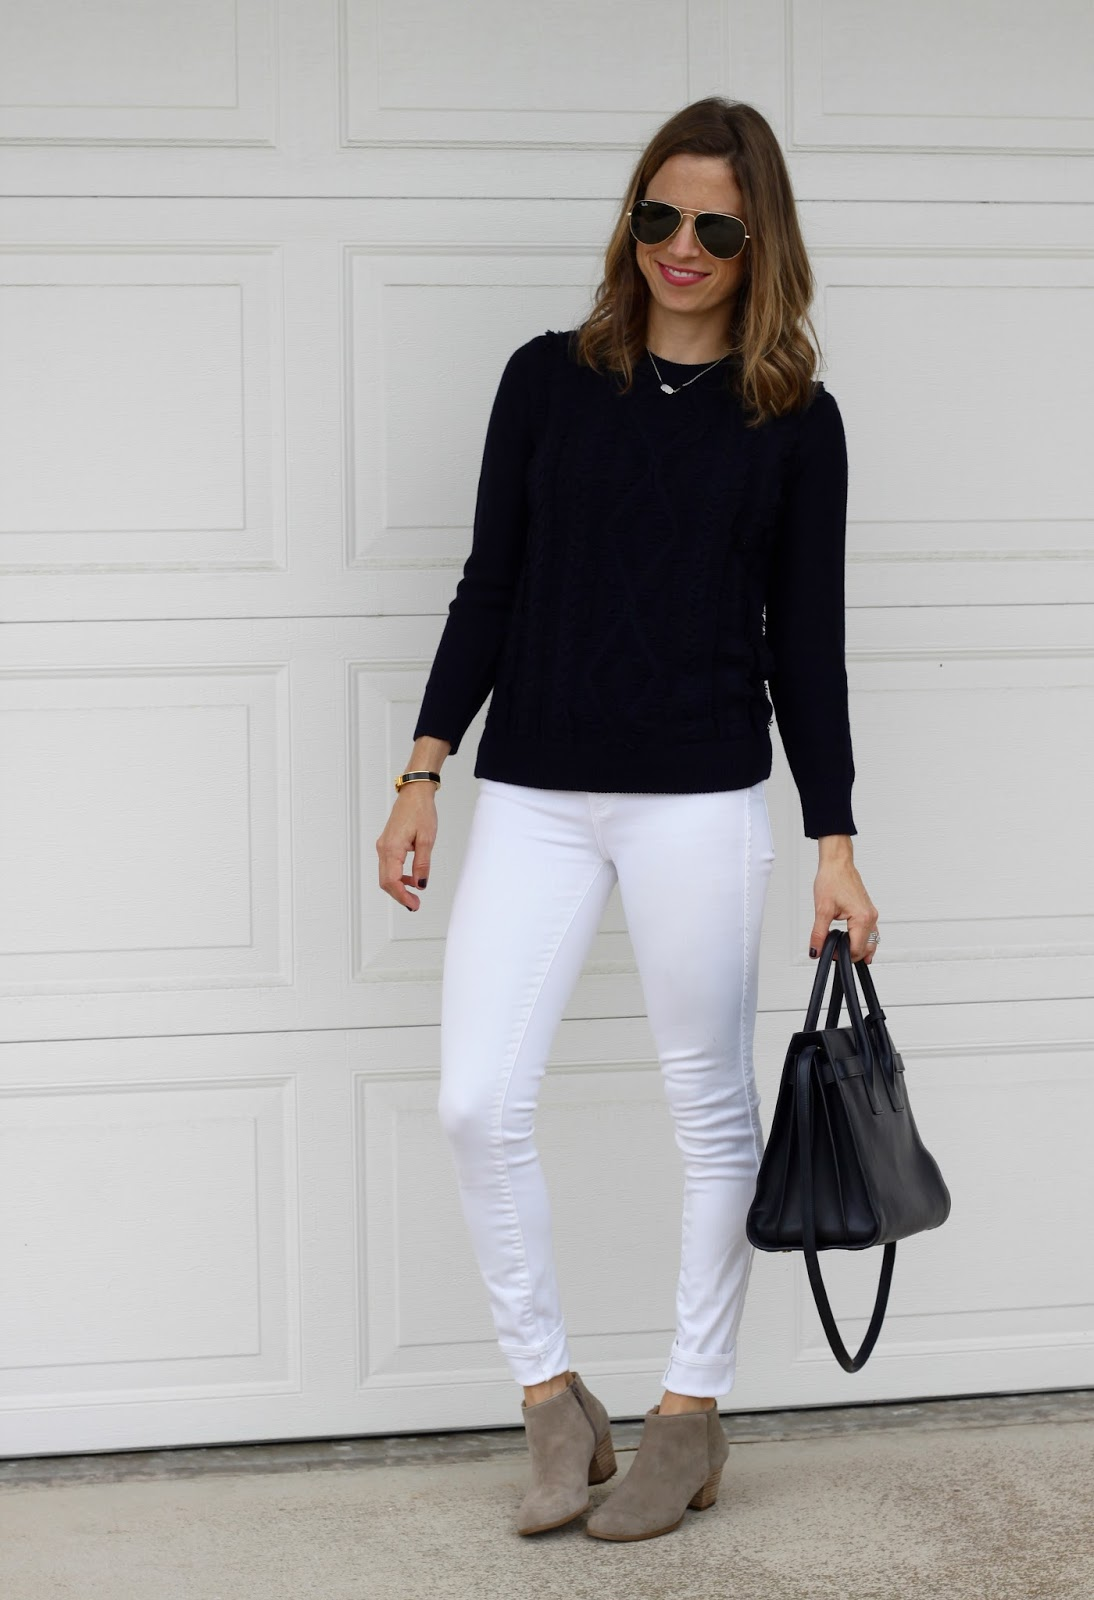 navy and white outfit